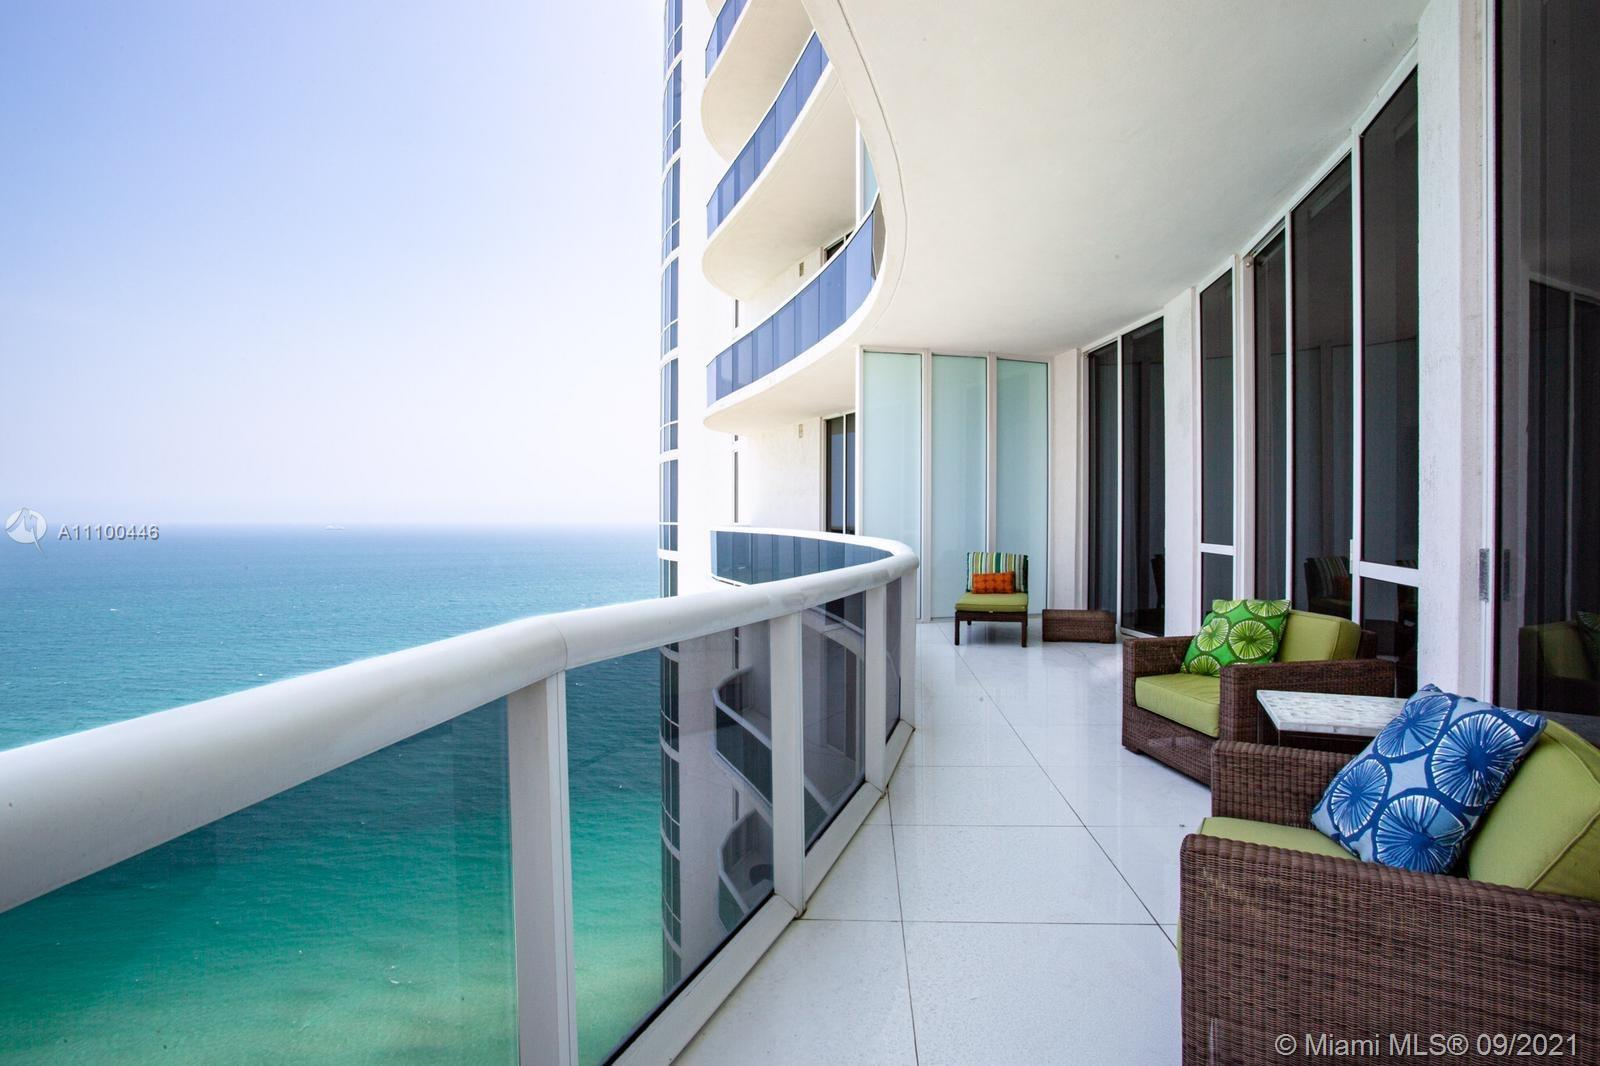 Beautiful Ocean views condo in exclusive Sunny Isles! This bright 3 (1 large den) bedrooms with 3 fu